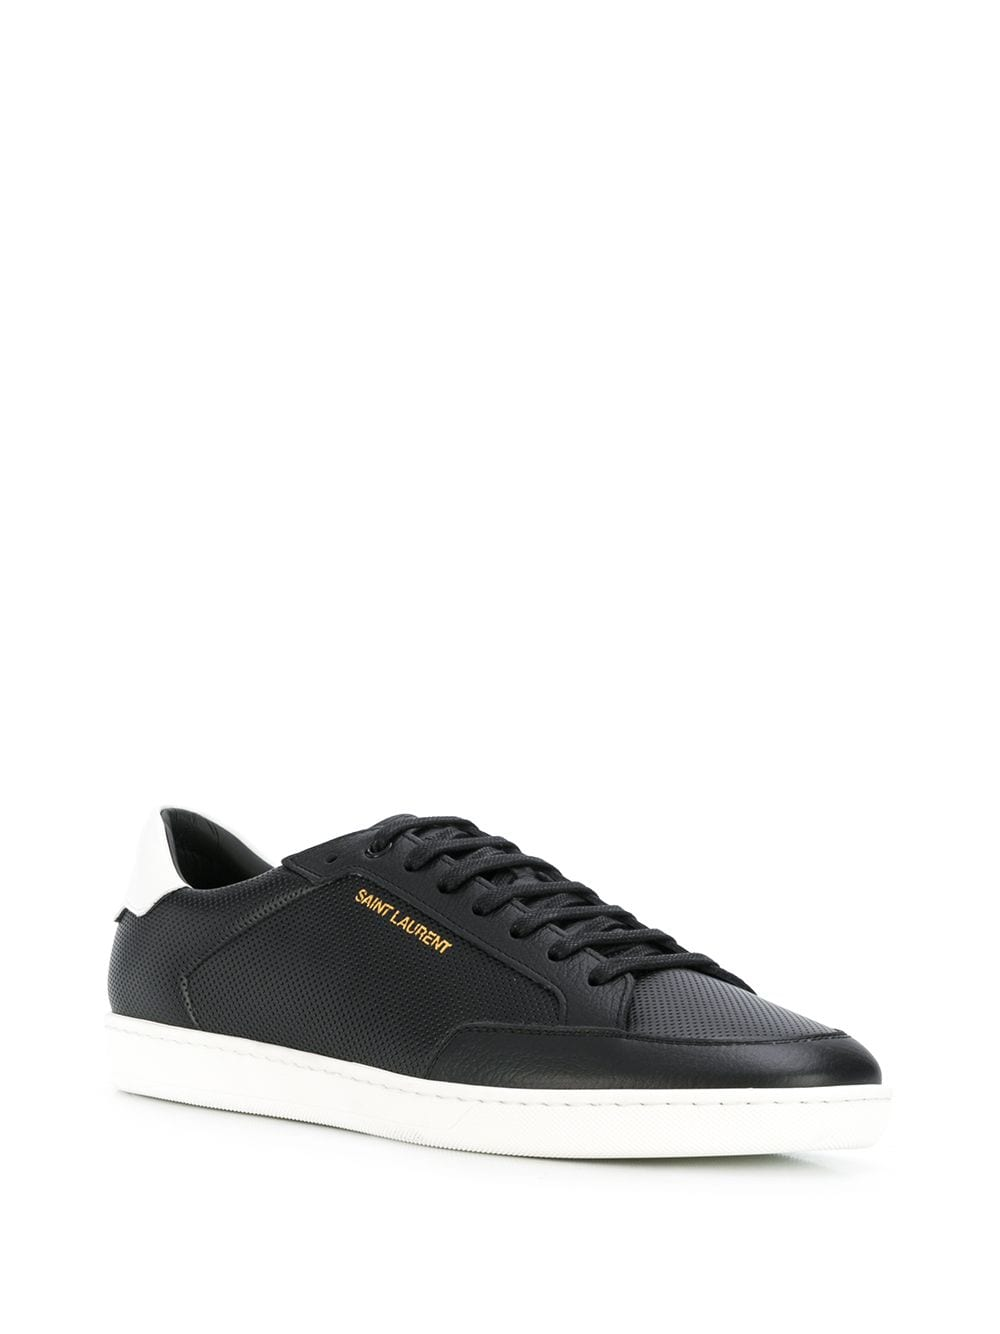 Black Leather Low Top Sneakers